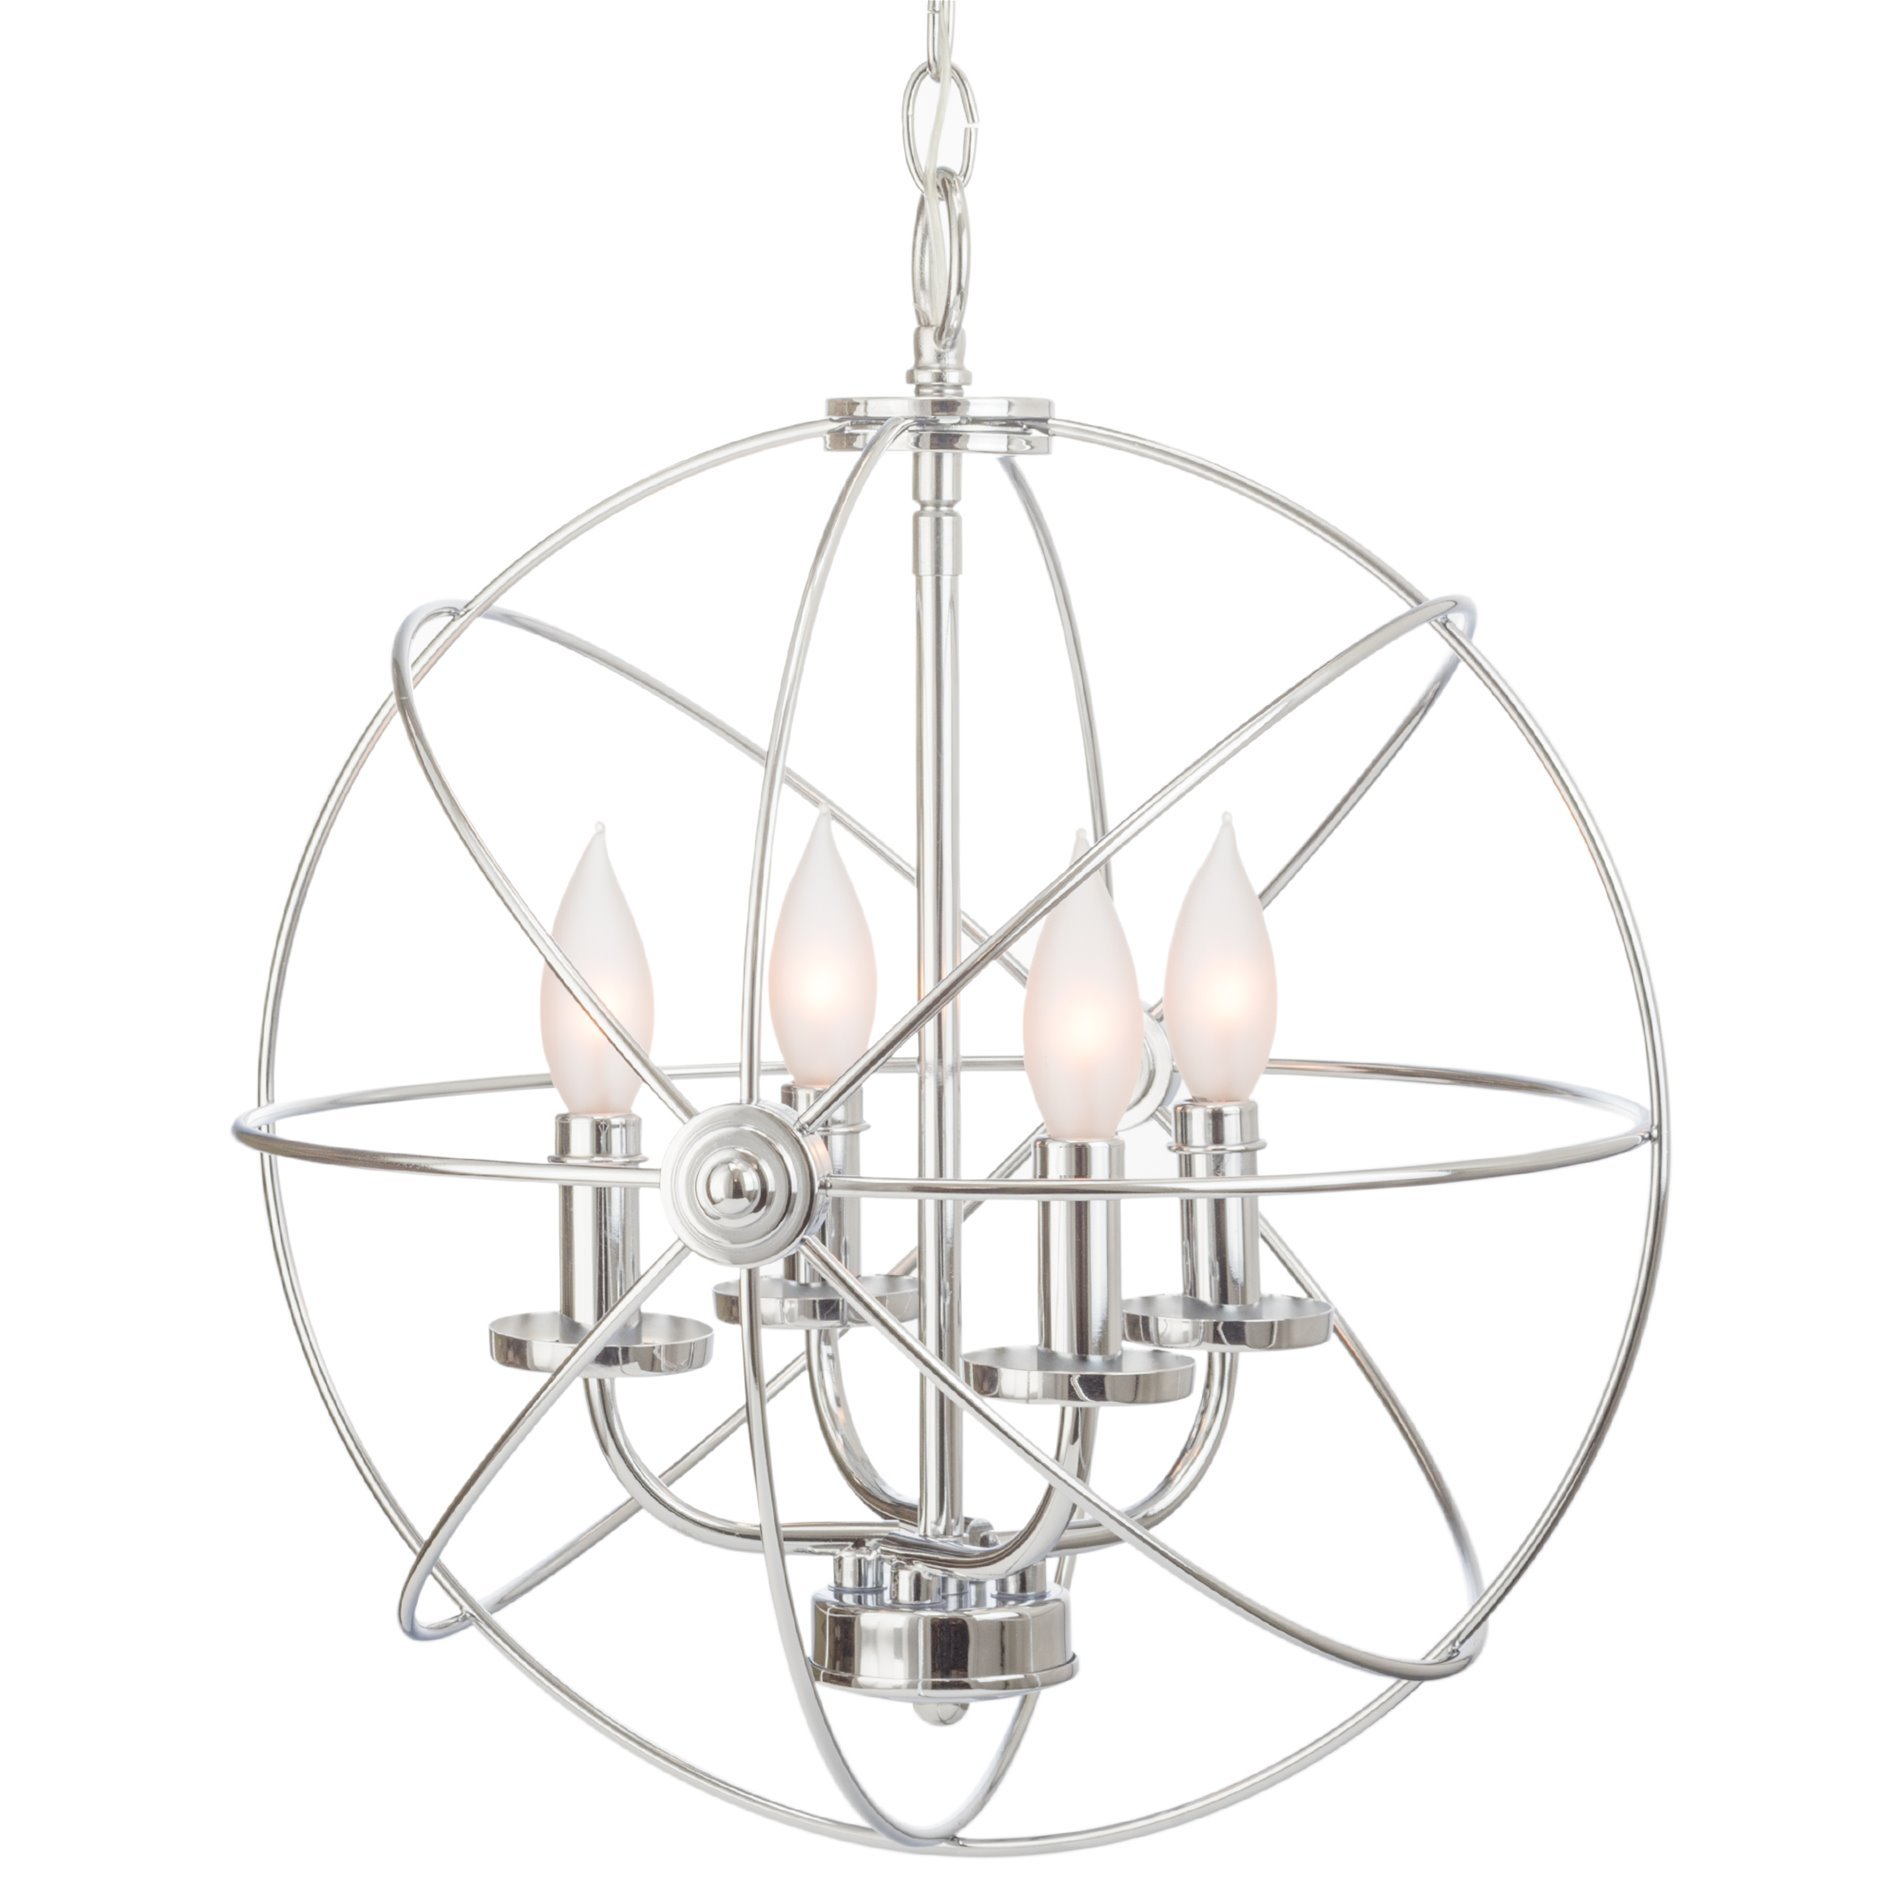 Kira Home Orbits II 15'' 4-Light Modern Sphere/Orb Chandelier, Chrome Finish by Kira Home